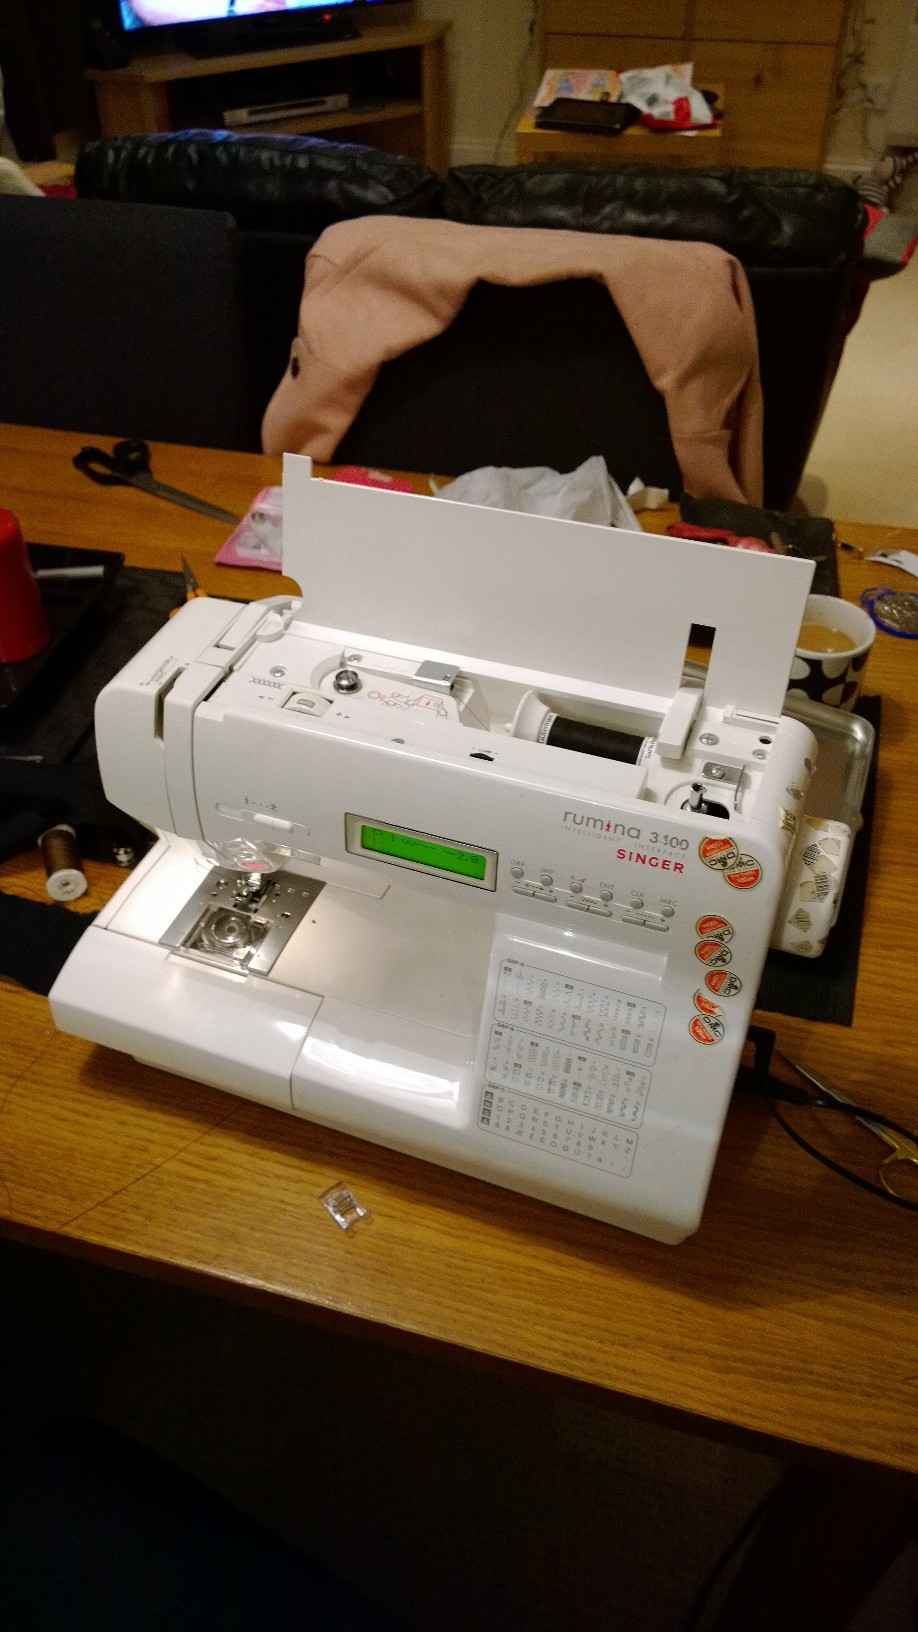 I'm introduced to the sewing machine, There are feet, bobbins, needles, things that need to go clockwise, straight stitch, zig zag stitch.... argh! This one is super high tech and cost about 500 quid. It's gotta be good for that price right? It has electronic buttons and stuff like that which makes me think it's awesome.